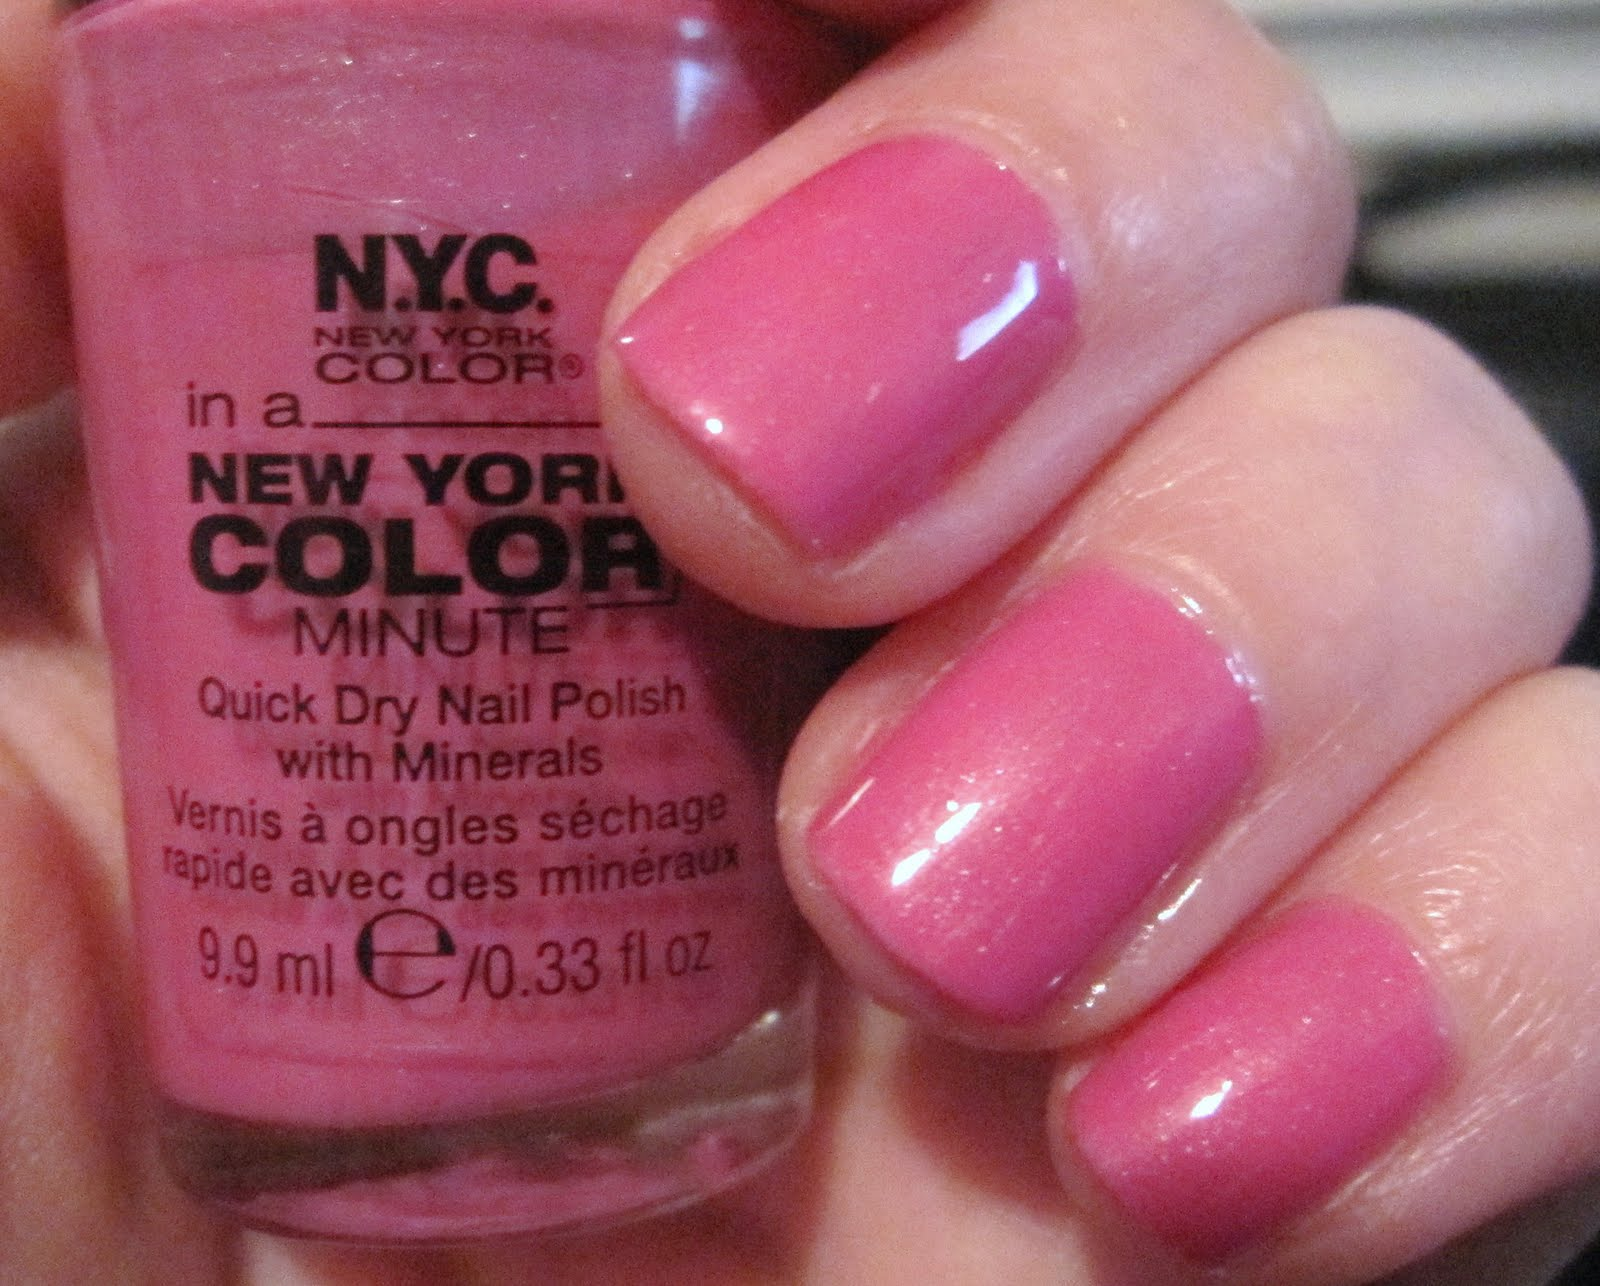 KIREI | BEAUTY: N.Y.C. In a New York Color Minute Quick Dry Nail ...